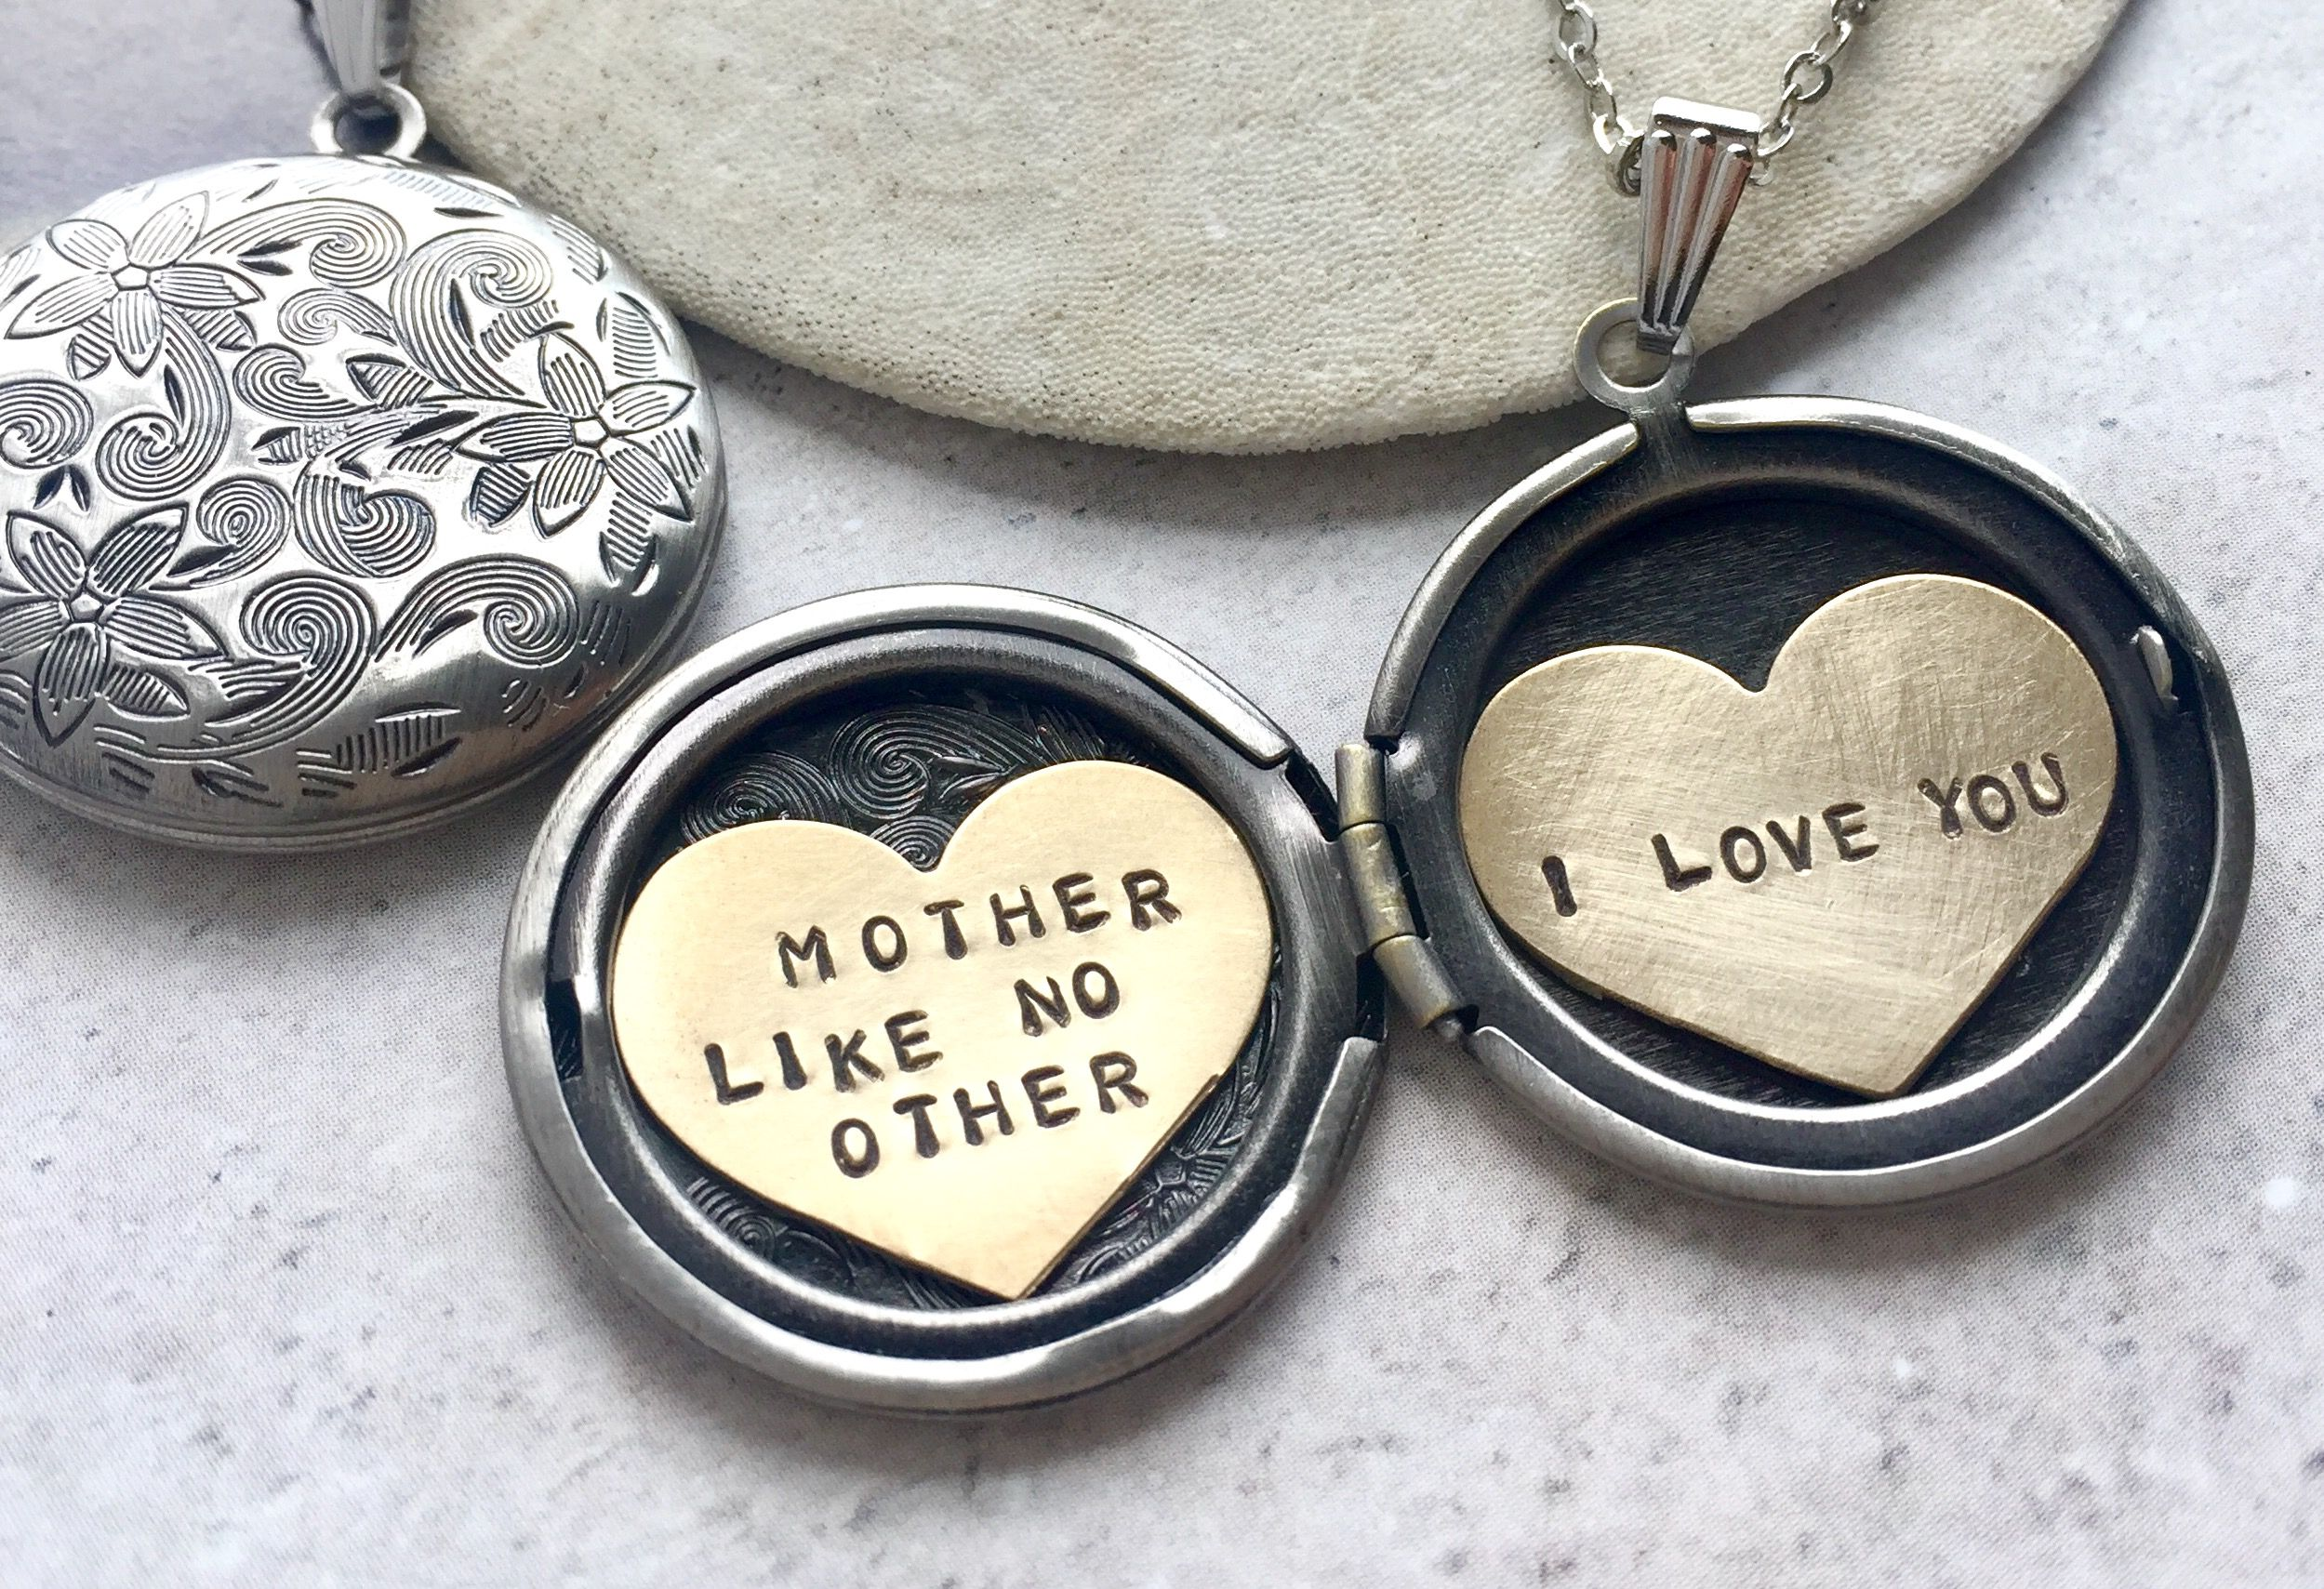 your cute our way you tell and pregnancy loved custom will a announcement looking family for lockets fun pin jewelry perfect to ideas re pregnant ones charm gift adore